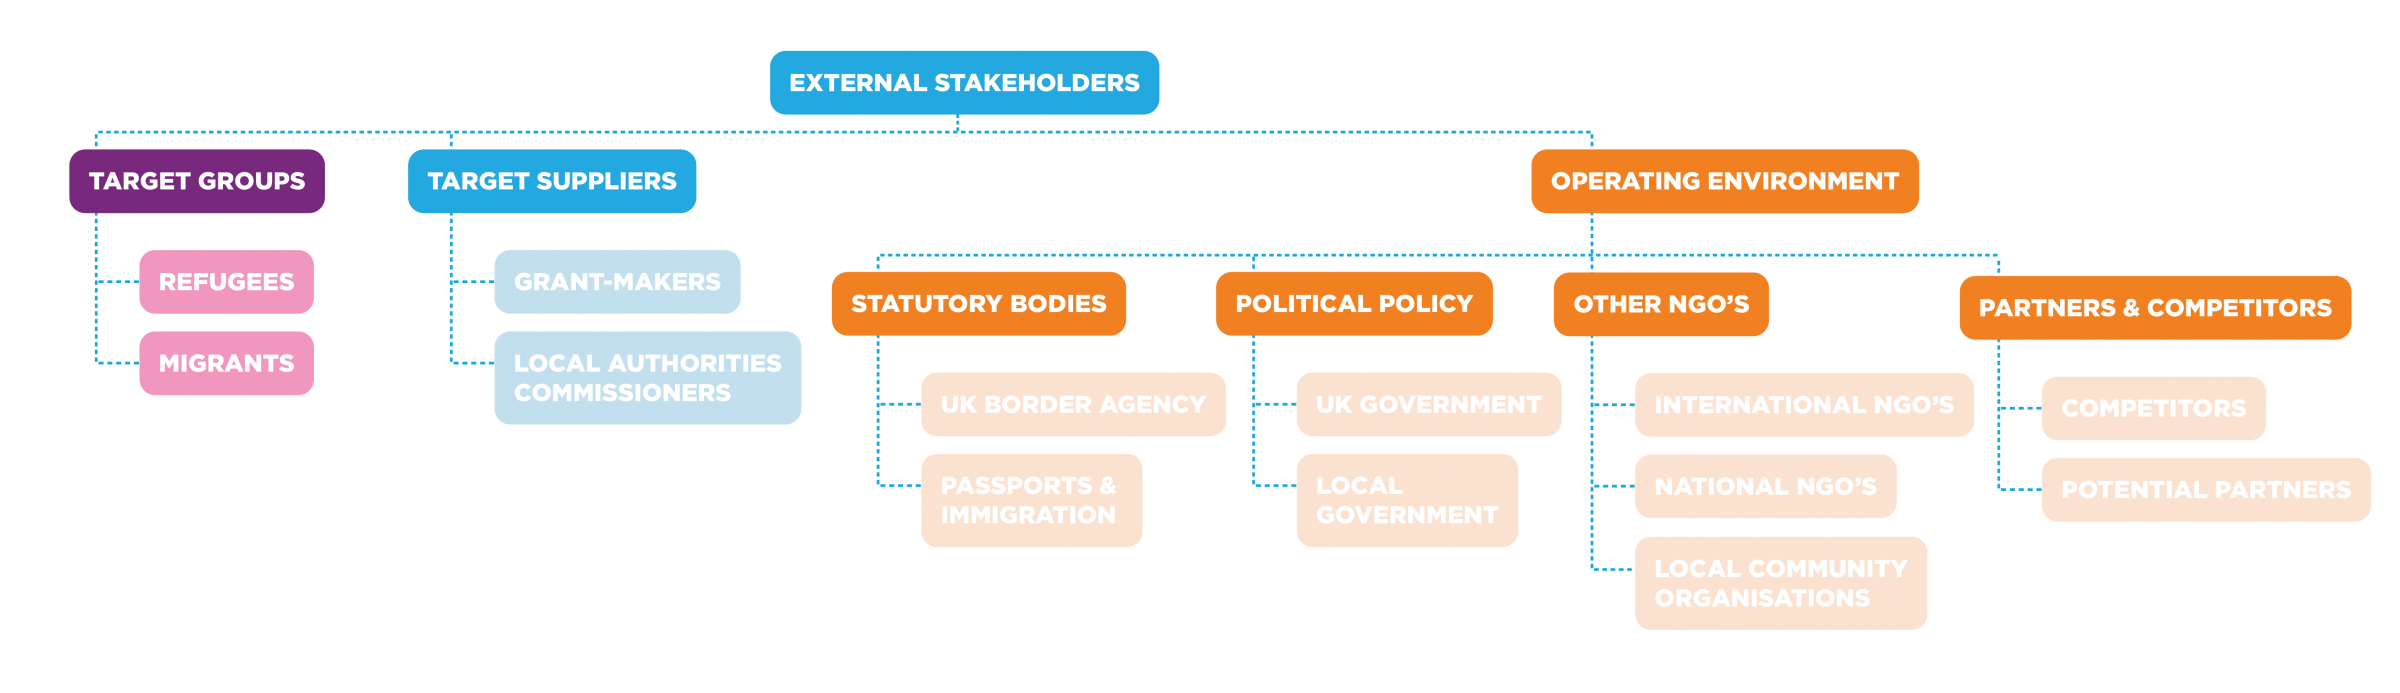 External stakeholder mapping diagram